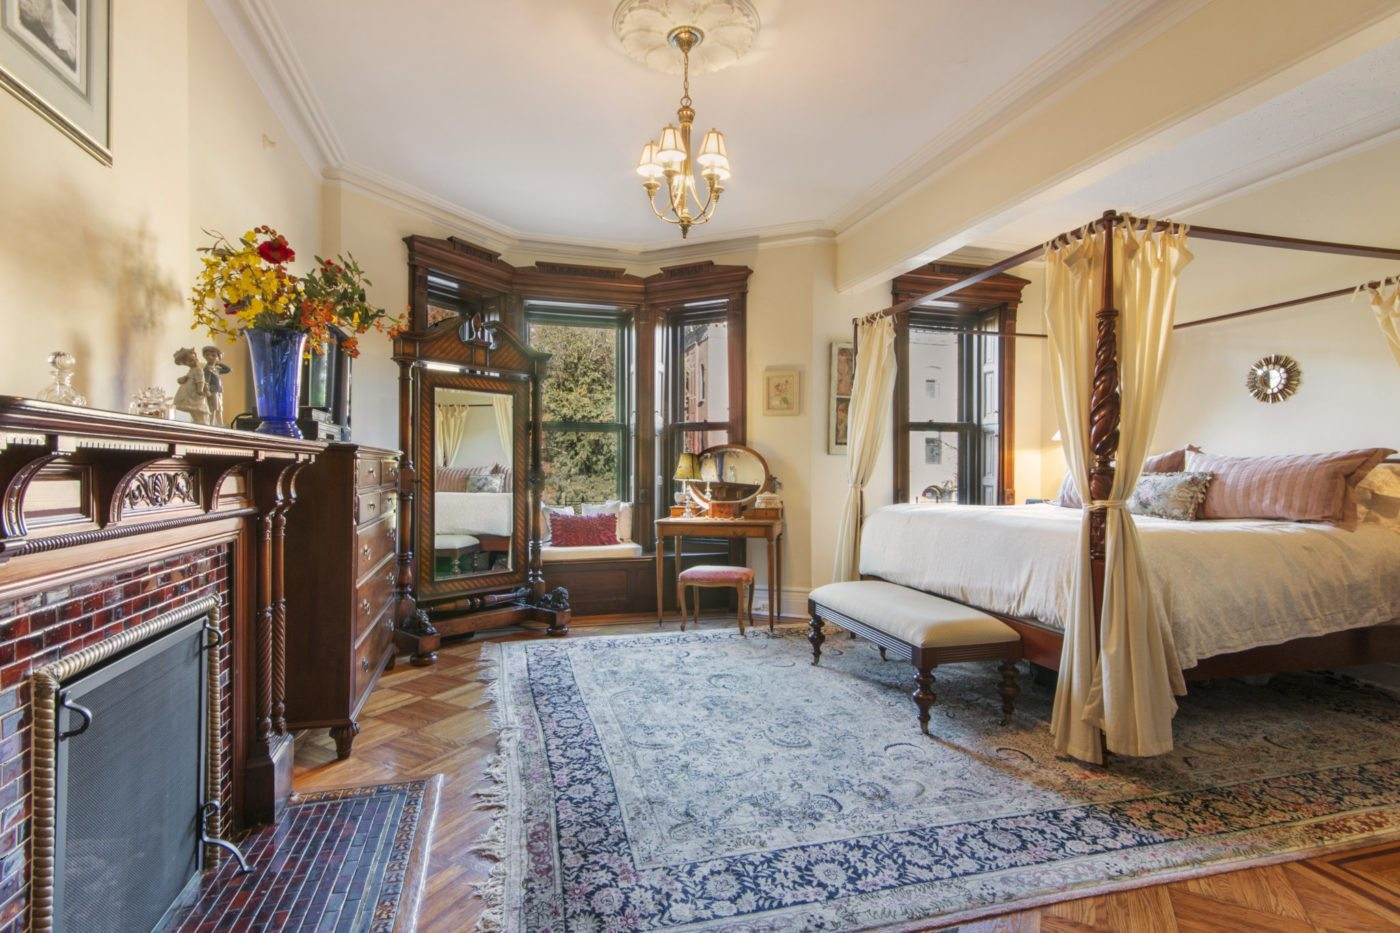 Restored brownstone in Park Slope